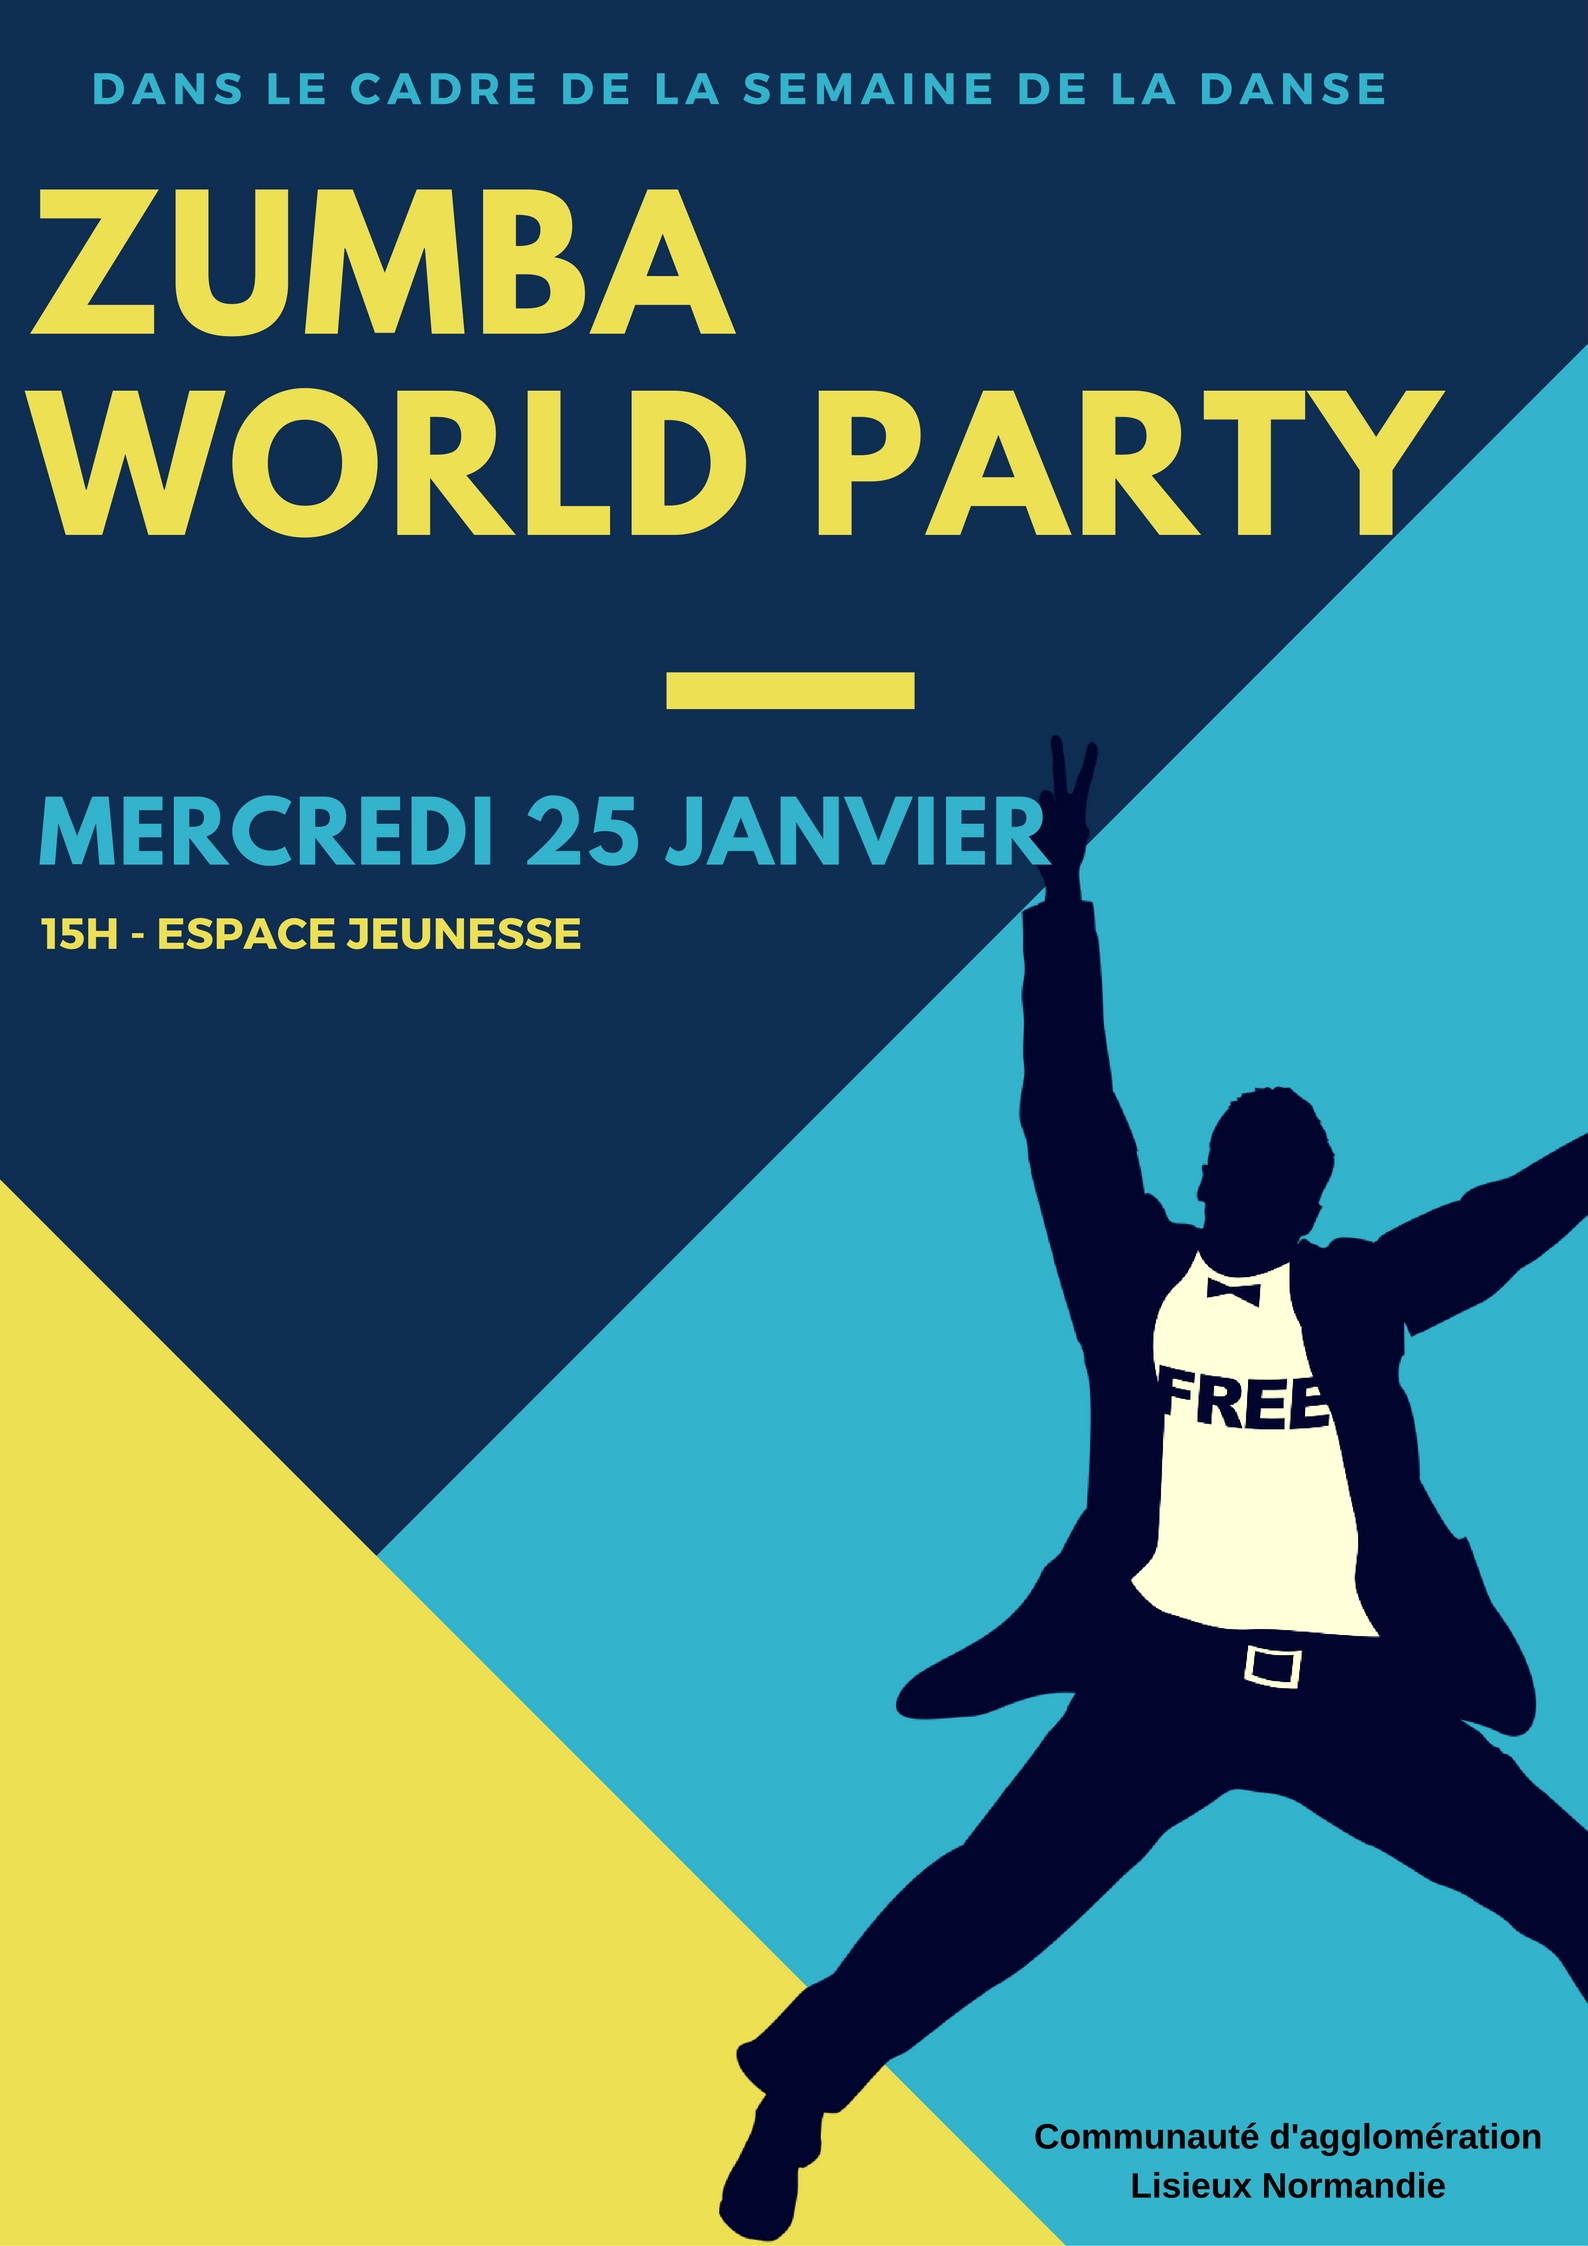 zumbaworld party 25 janvier